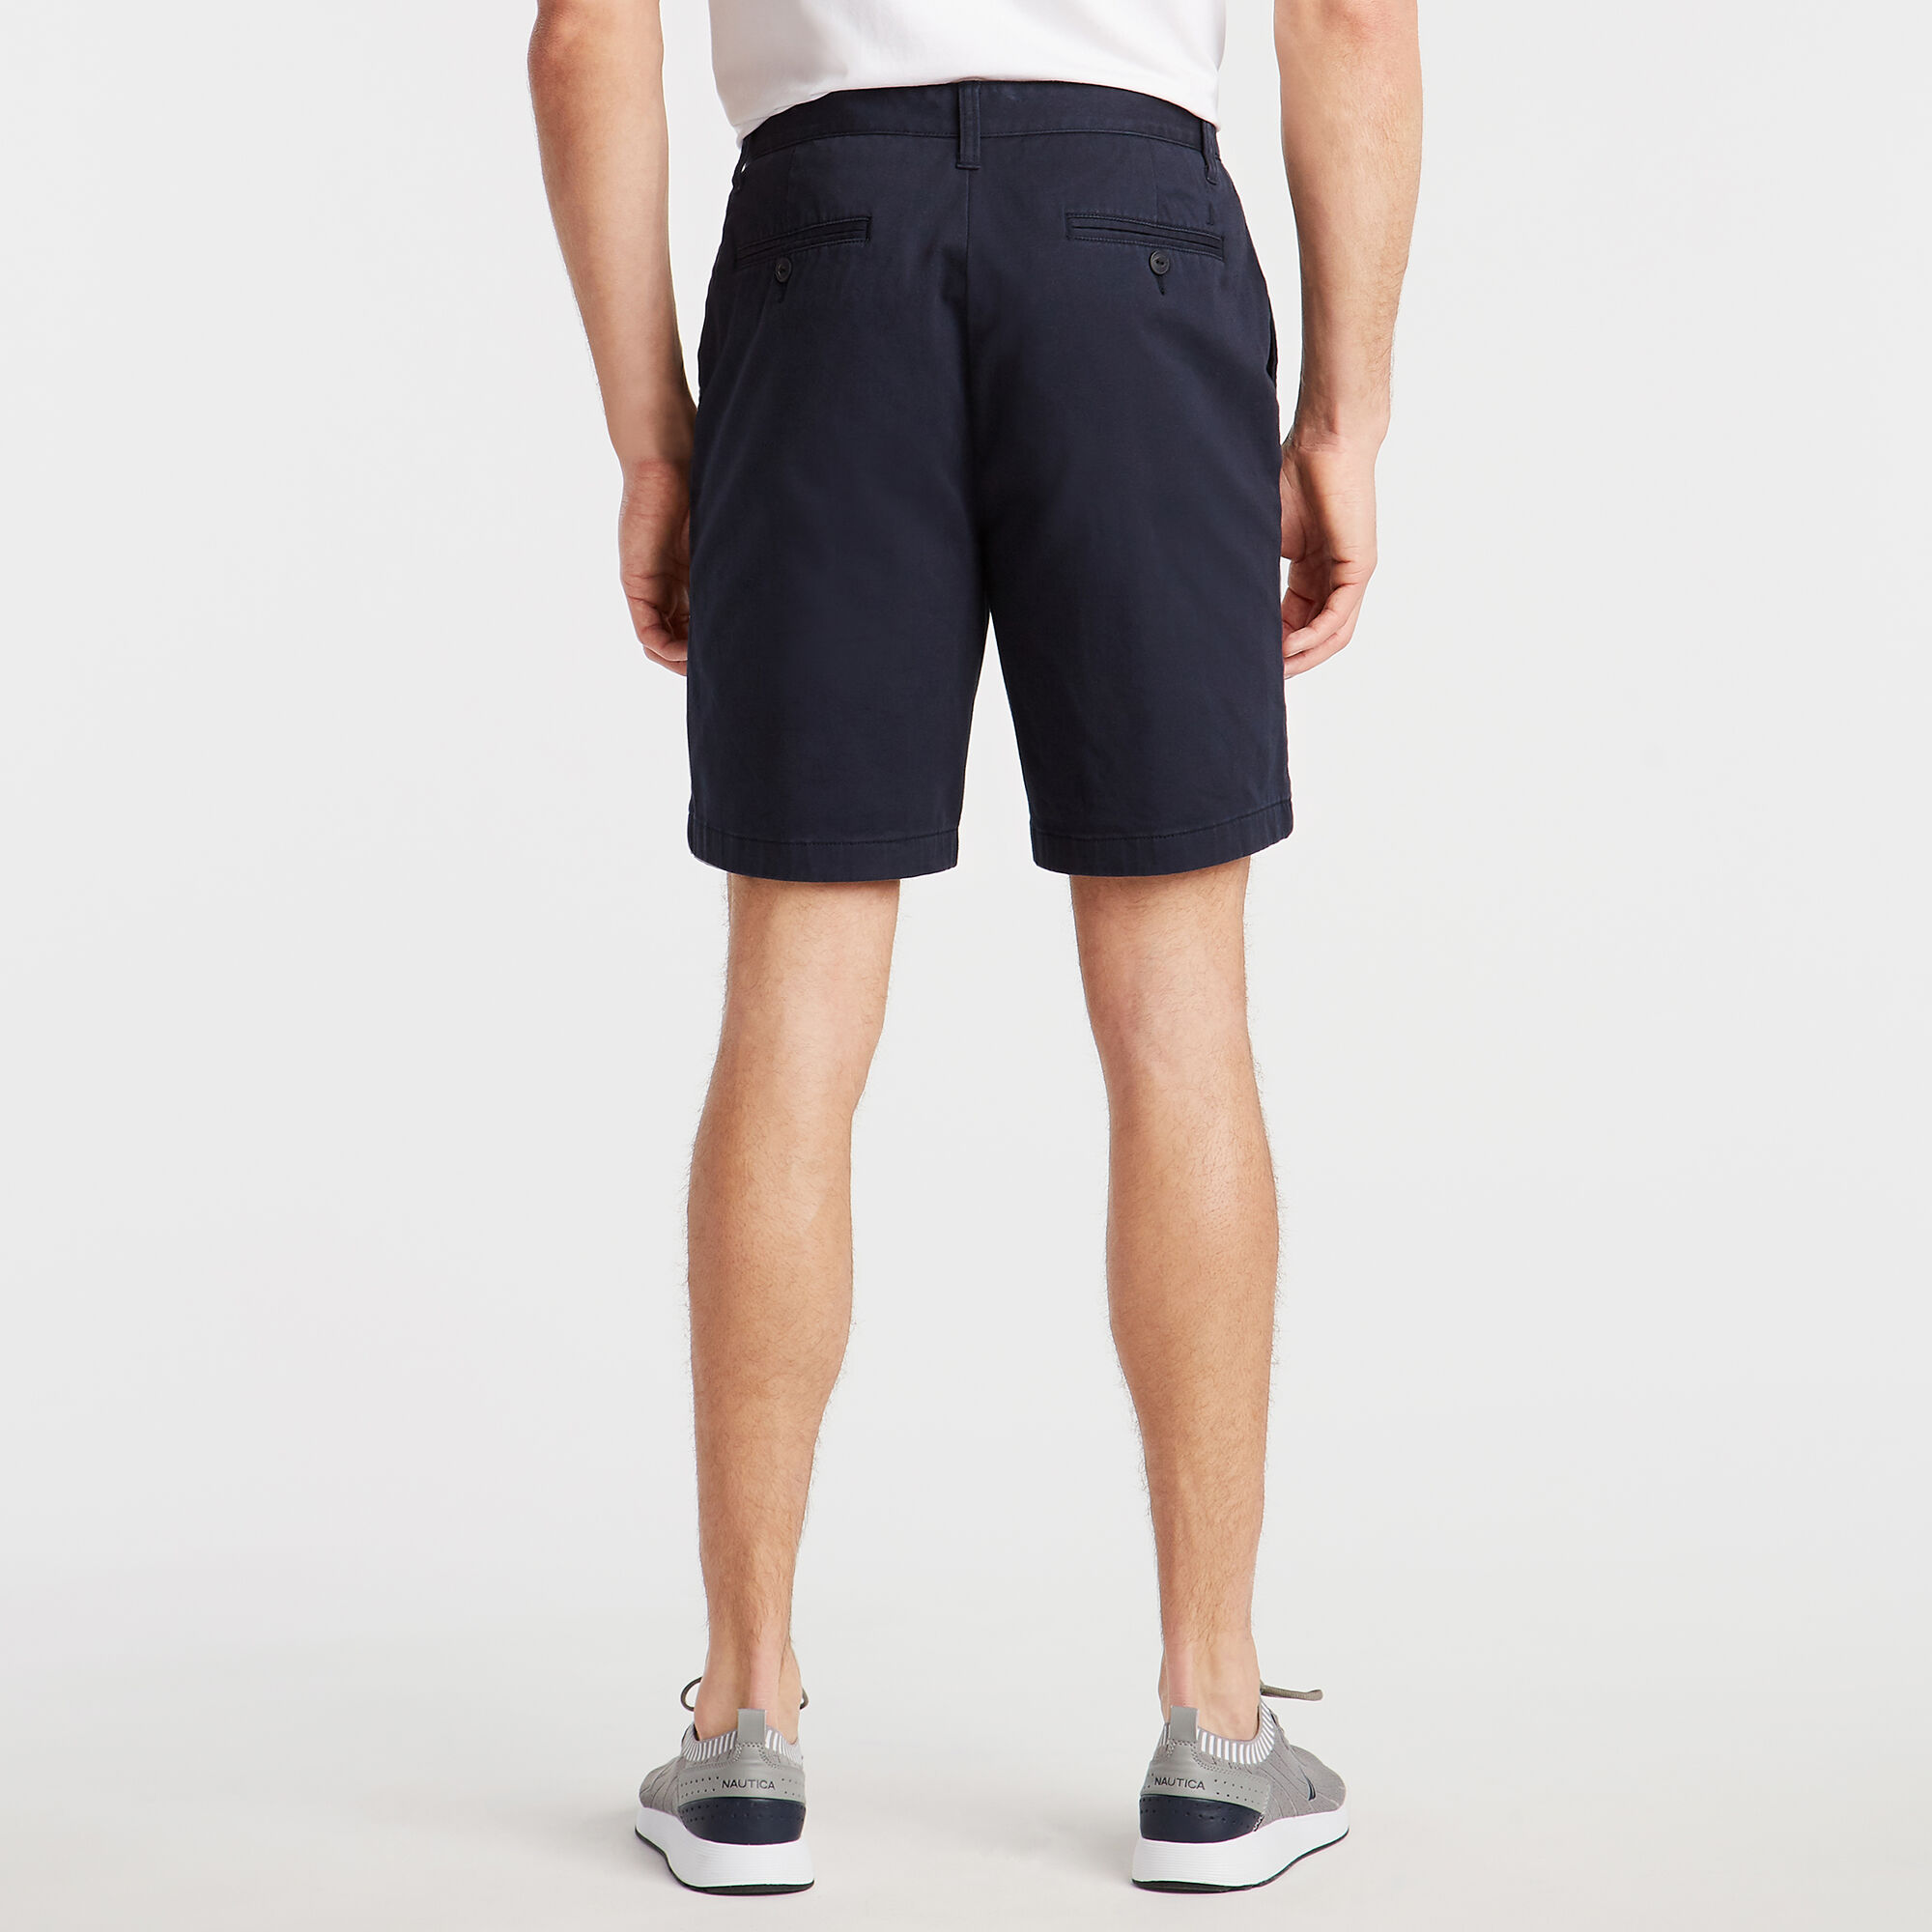 Nautica-Mens-8-5-034-Classic-Fit-Deck-Short-With-Stretch thumbnail 52